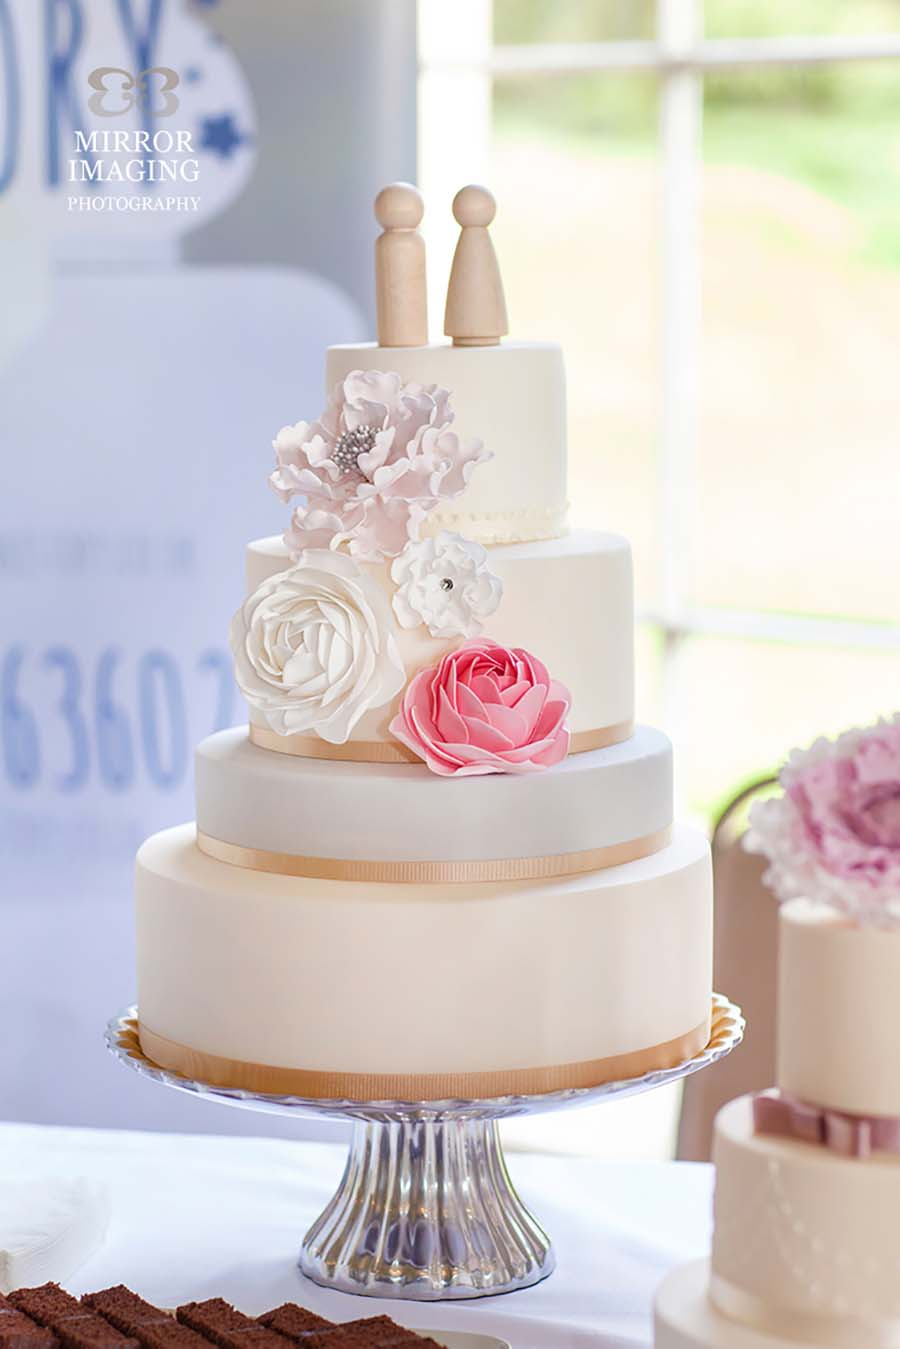 The Cake Story Nottingham - Mirror Imaging Photography